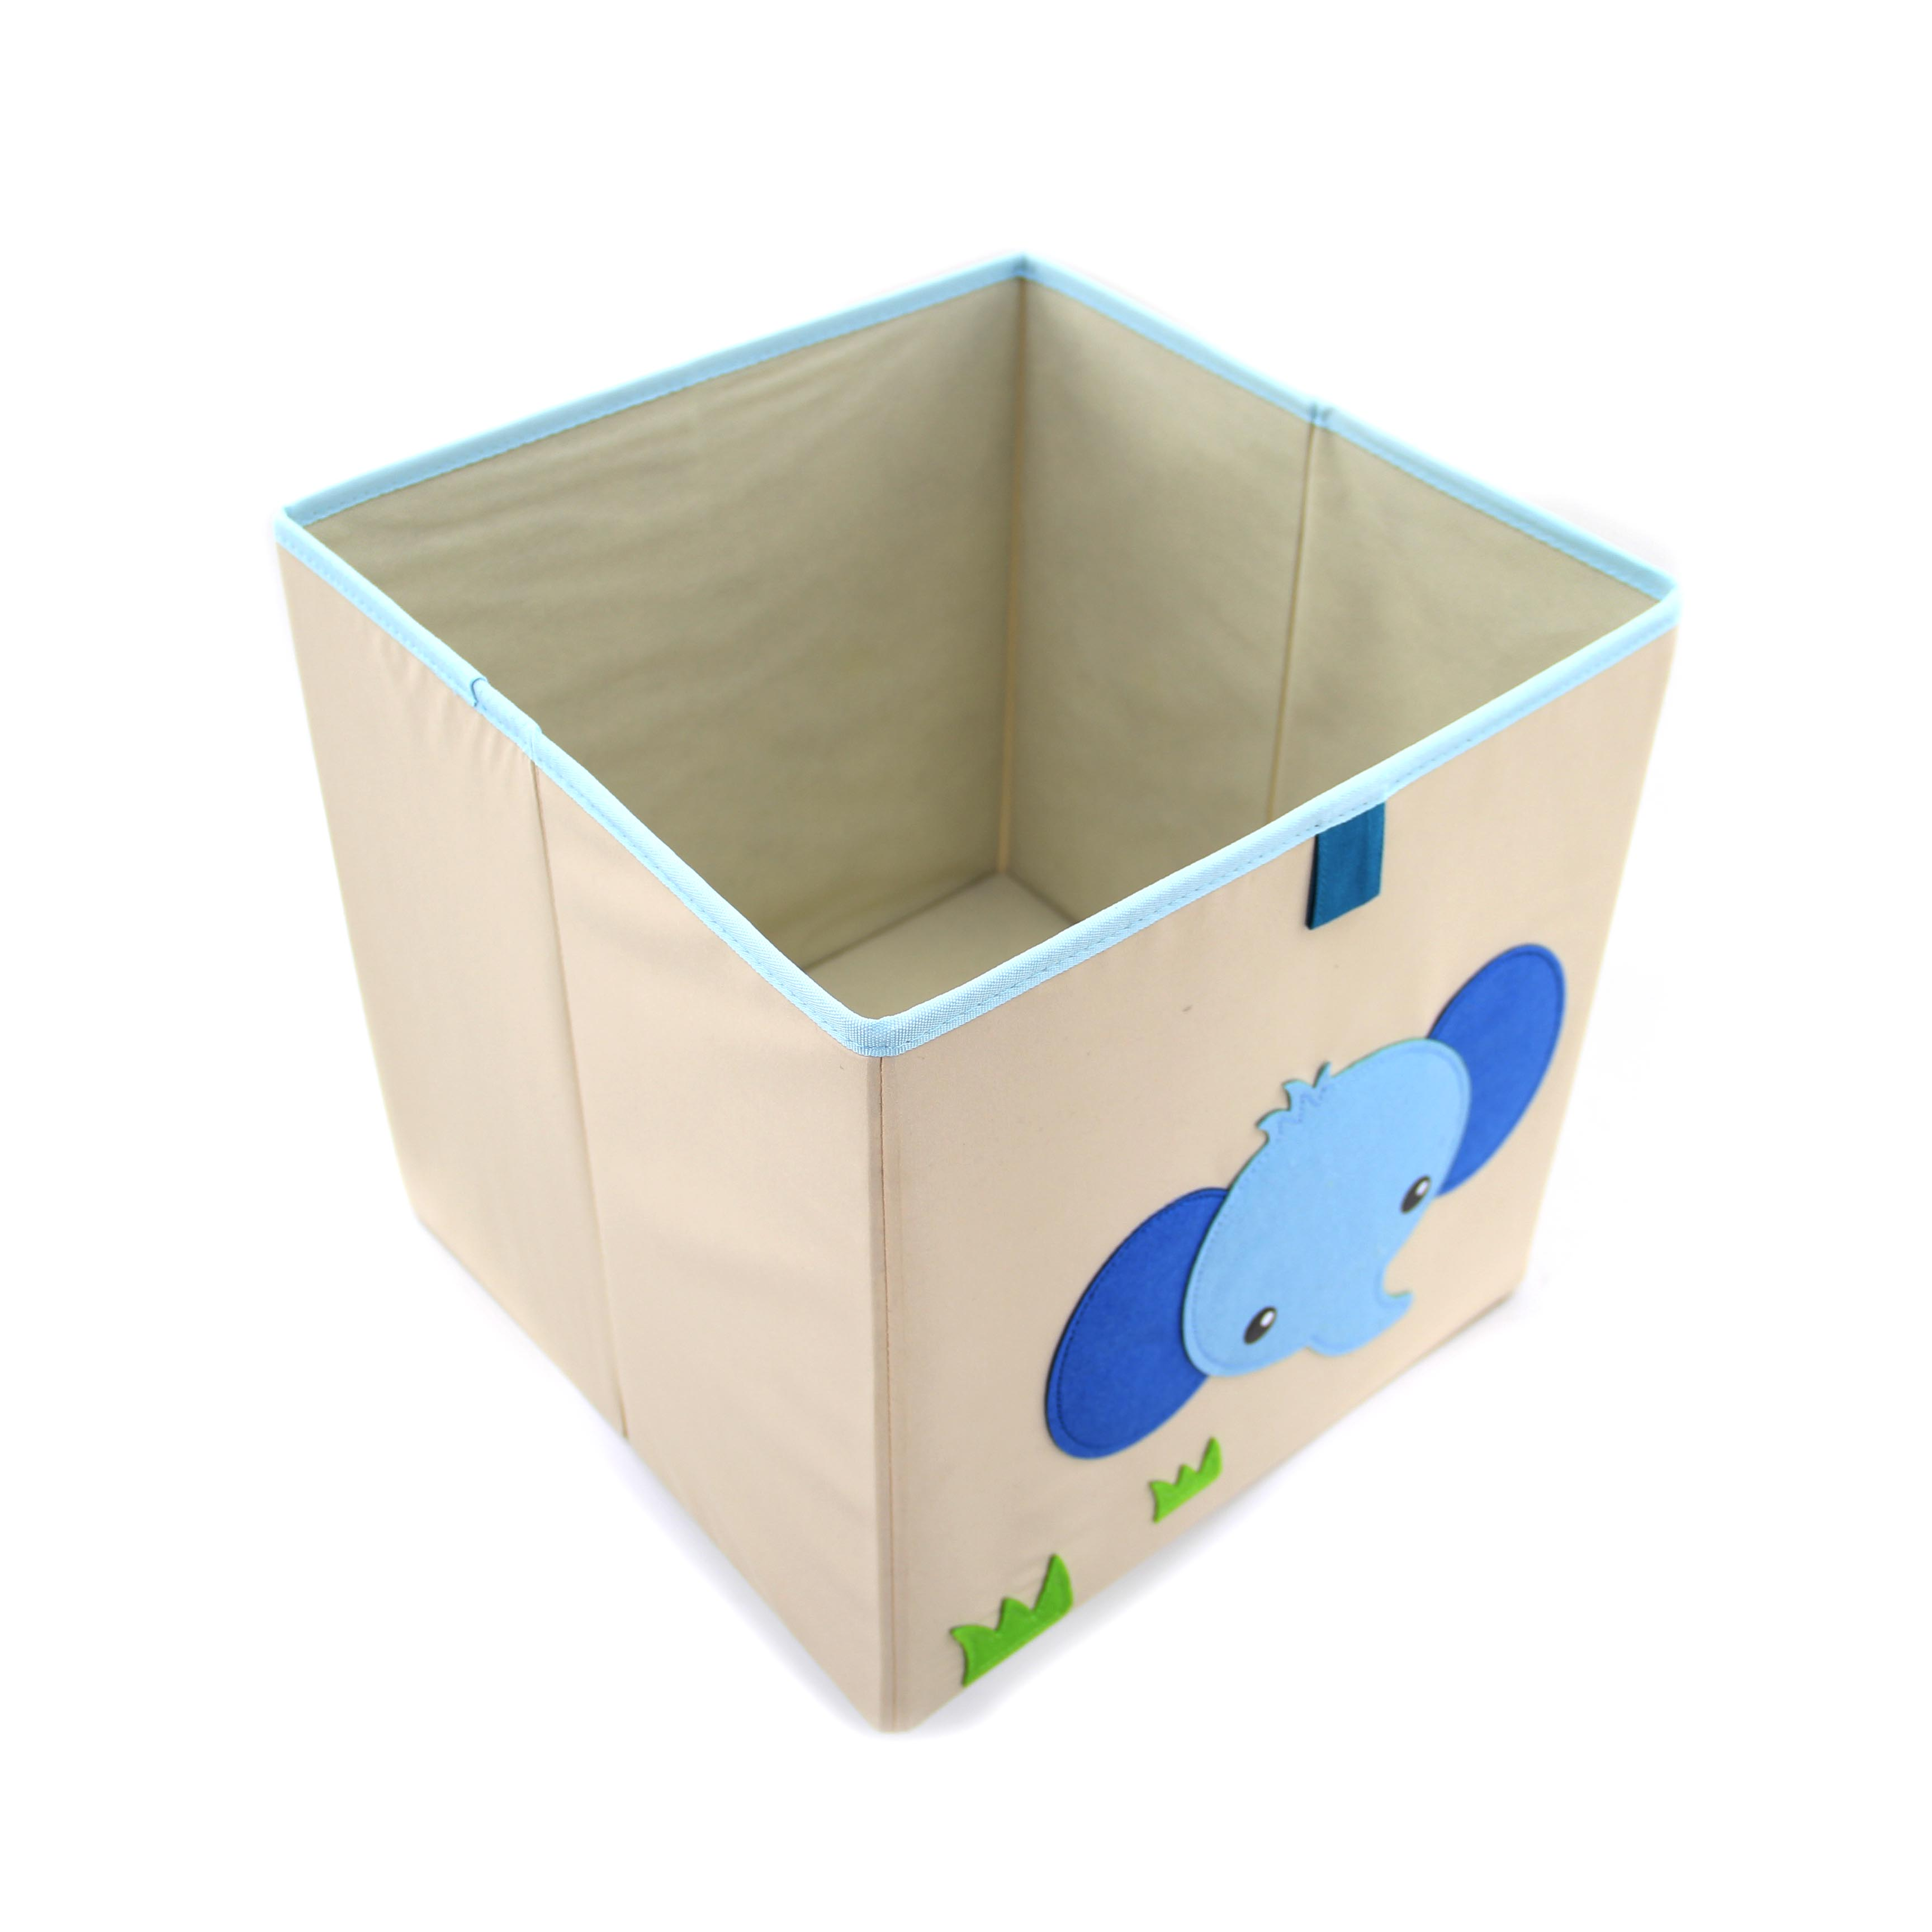 Cute Kids Toy Organizer Baby Clothing Folding Storage Box Collapsible Fabric Storage Cube Boxes with Animal Embroidery